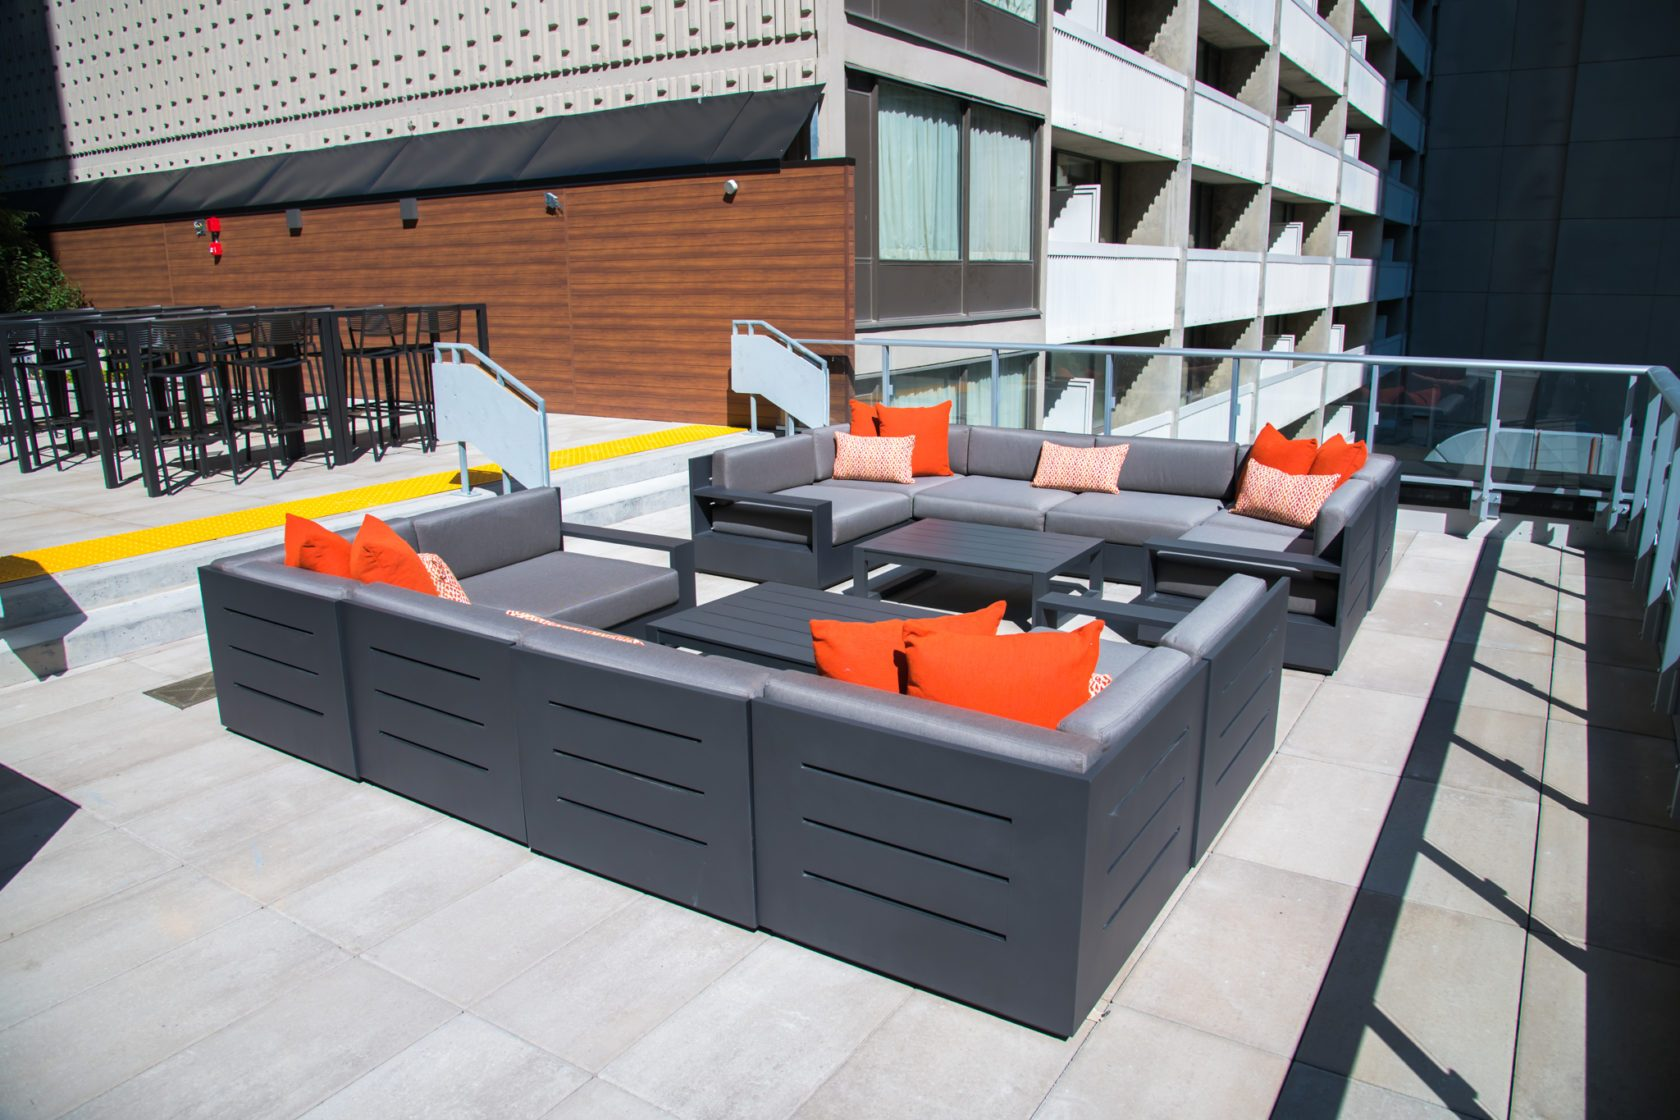 The Livmore outdoor terrace with seating